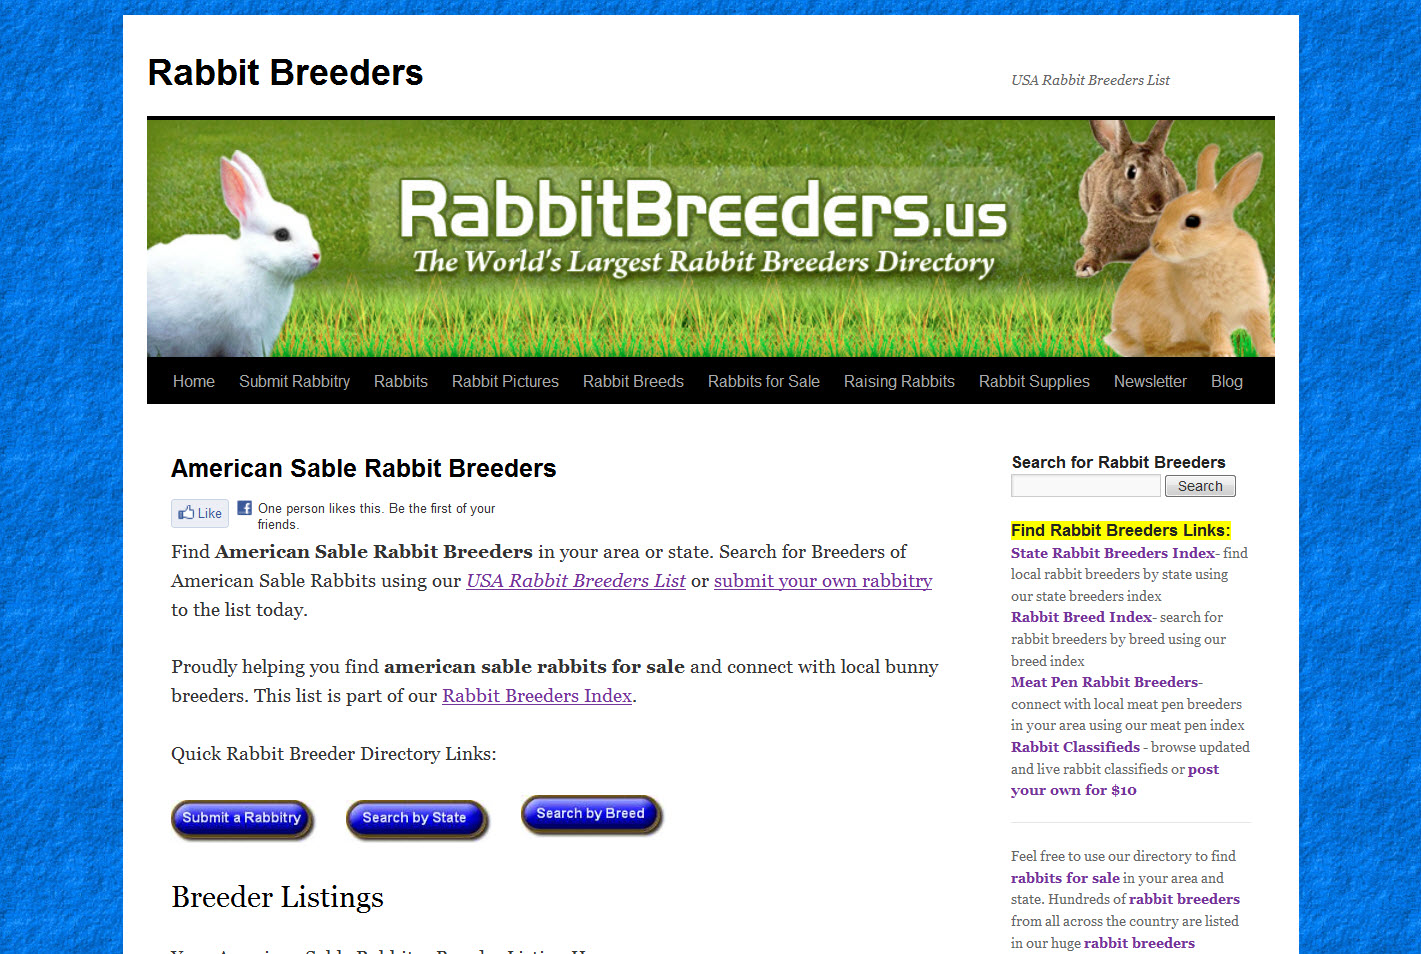 American Sable Rabbit Breeders